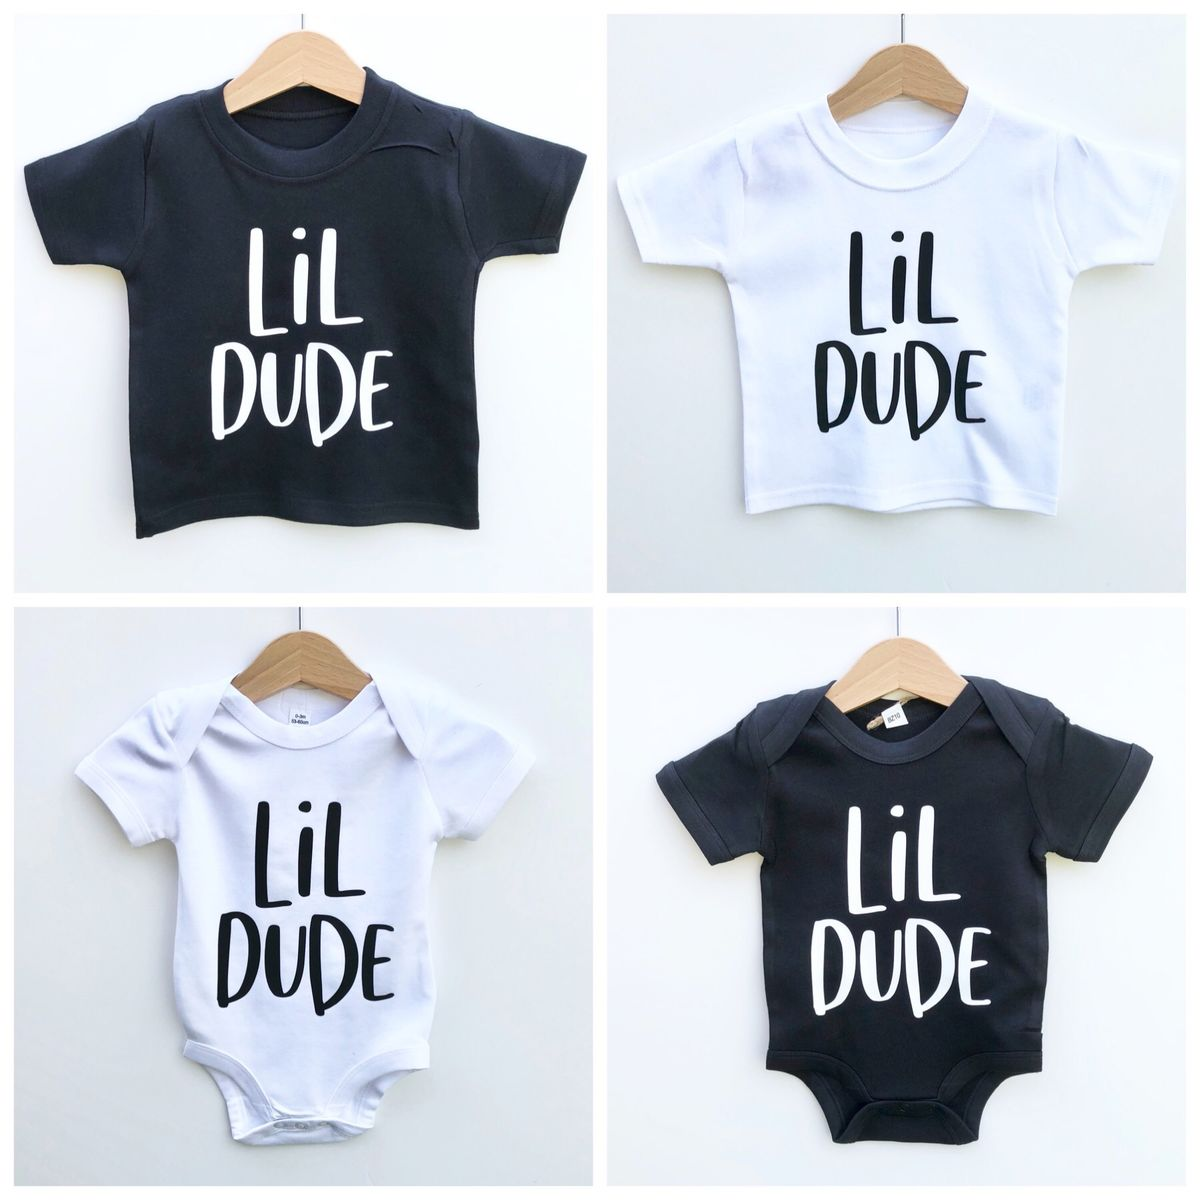 Lil Dude Black & White T-Shirt or Bodysuit (various sizes) - product images  of